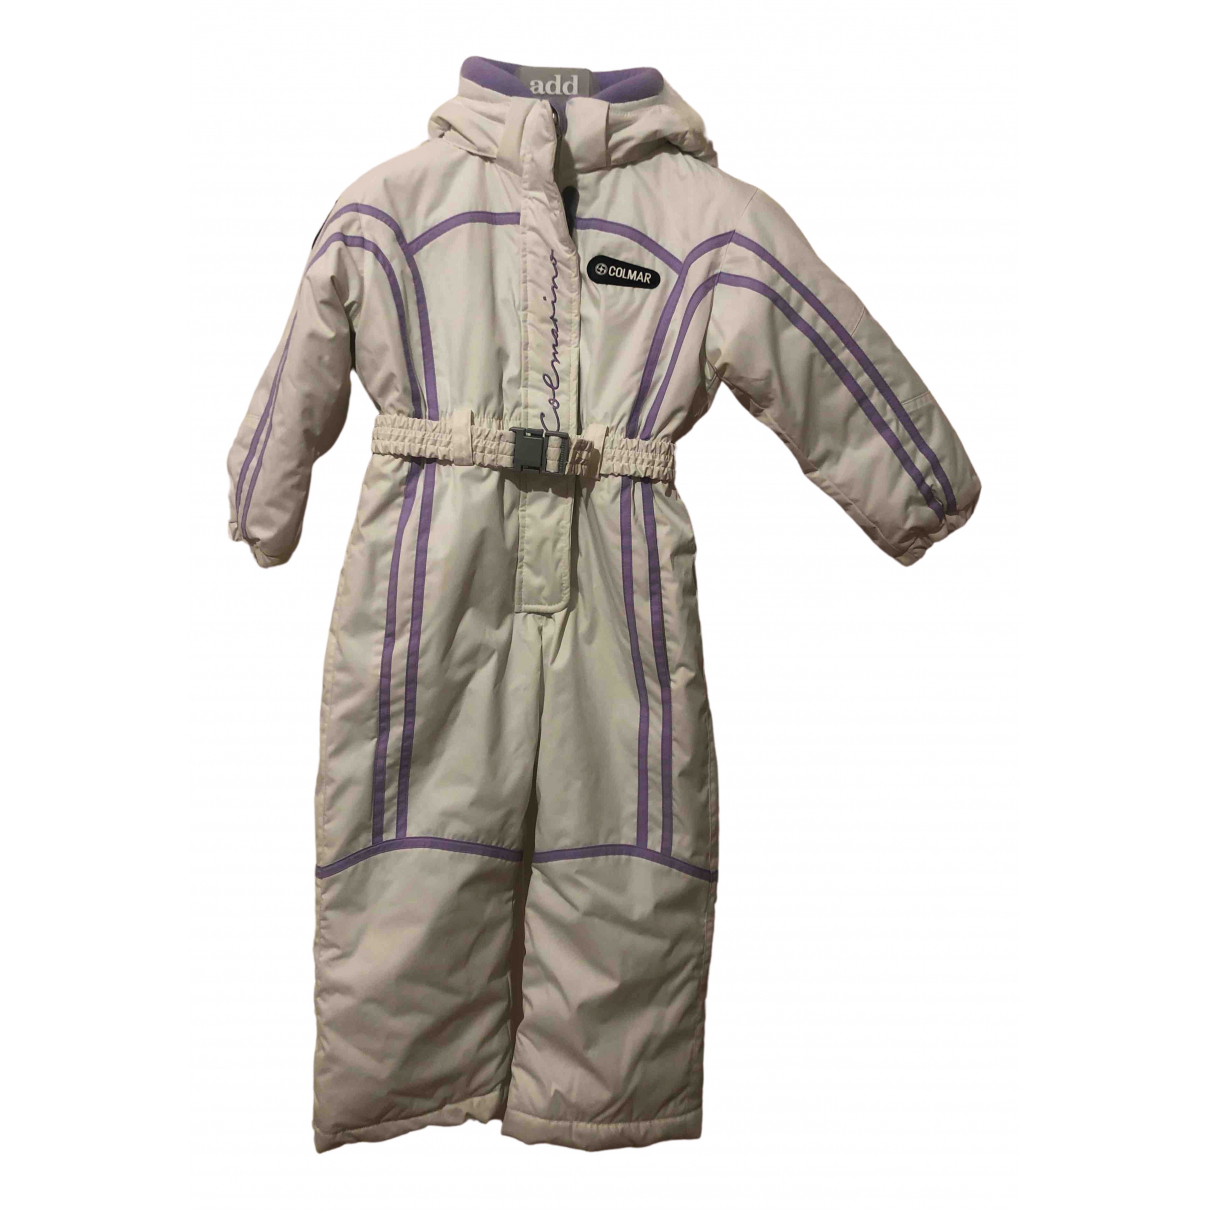 Colmar \N White jacket & coat for Kids 2 years - up to 86cm FR